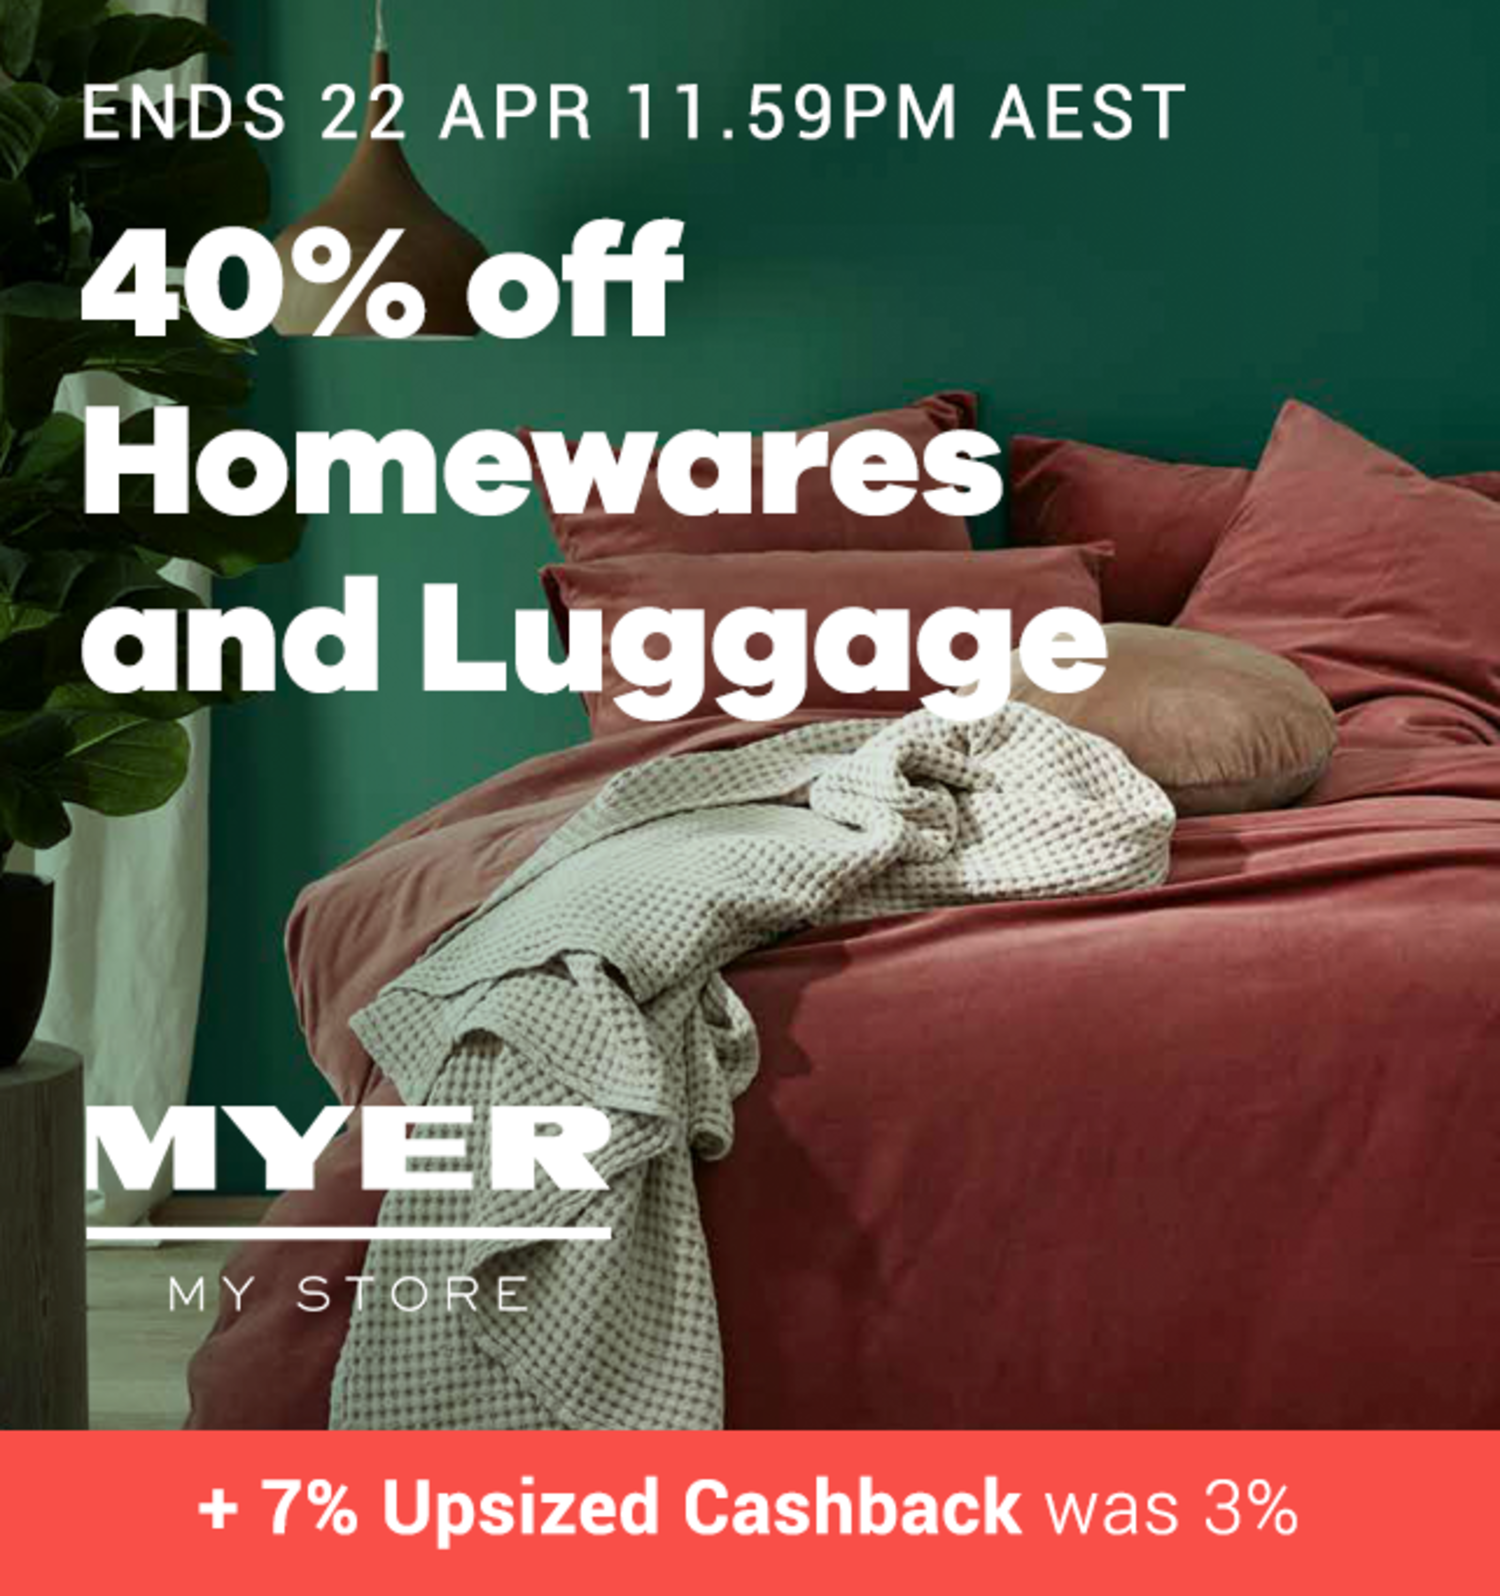 Myer - 40% off Homewares and Luggage